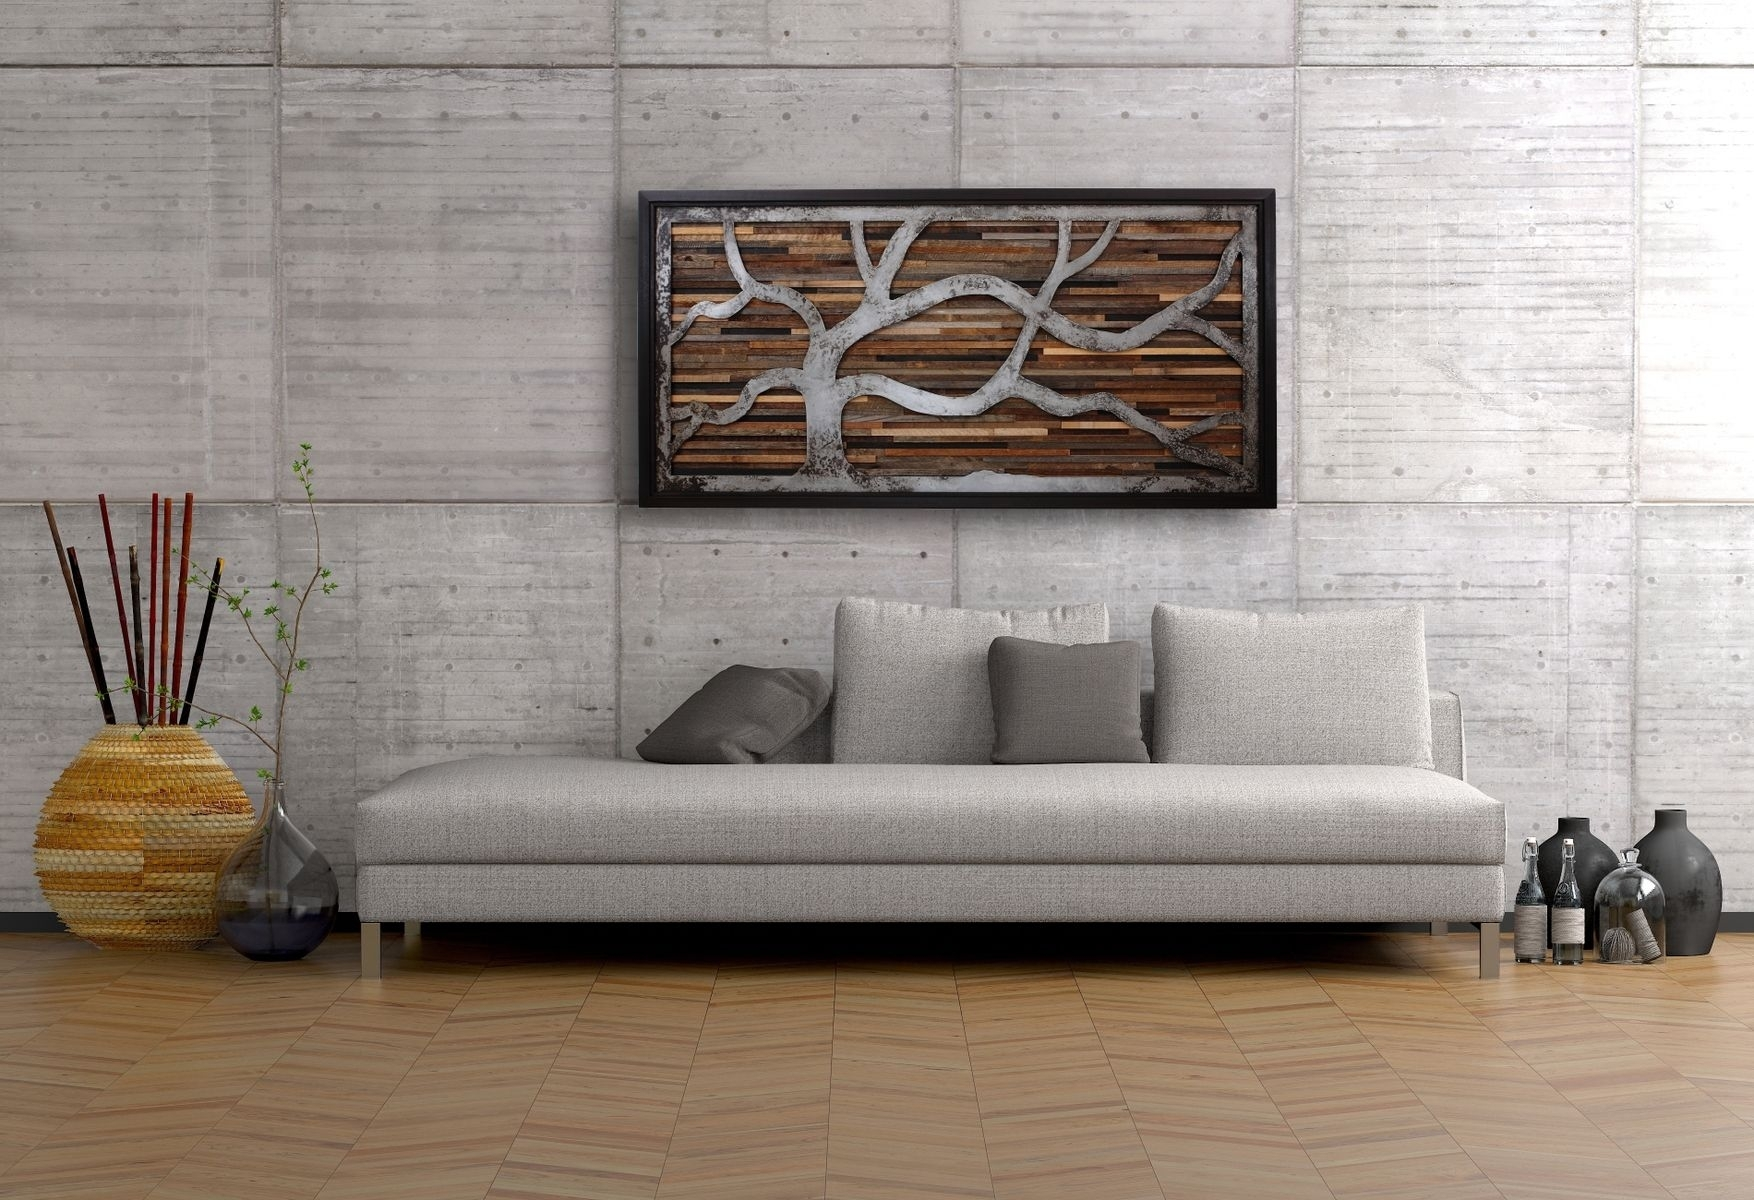 Handmade Reclaimed Wood Wall Art Made Of Old Barnwood And Rustic With Current Personalized Wood Wall Art (View 2 of 20)